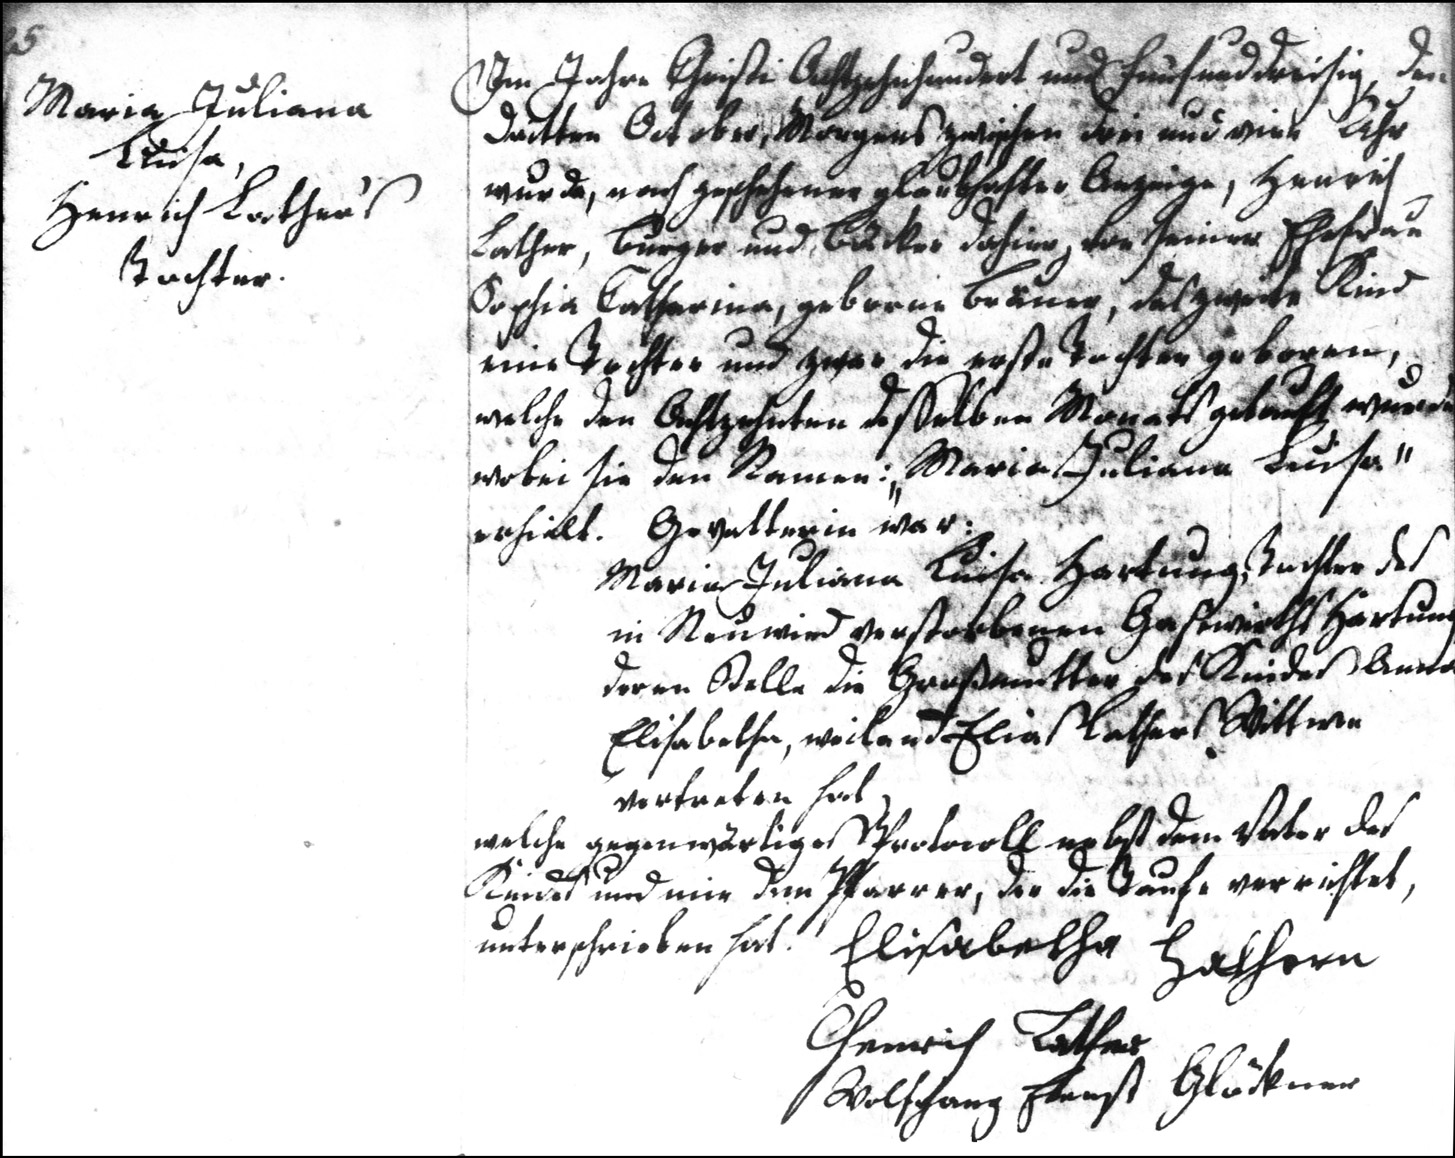 The Birth and Baptismal Record of Maria Juliana Lather - 1835